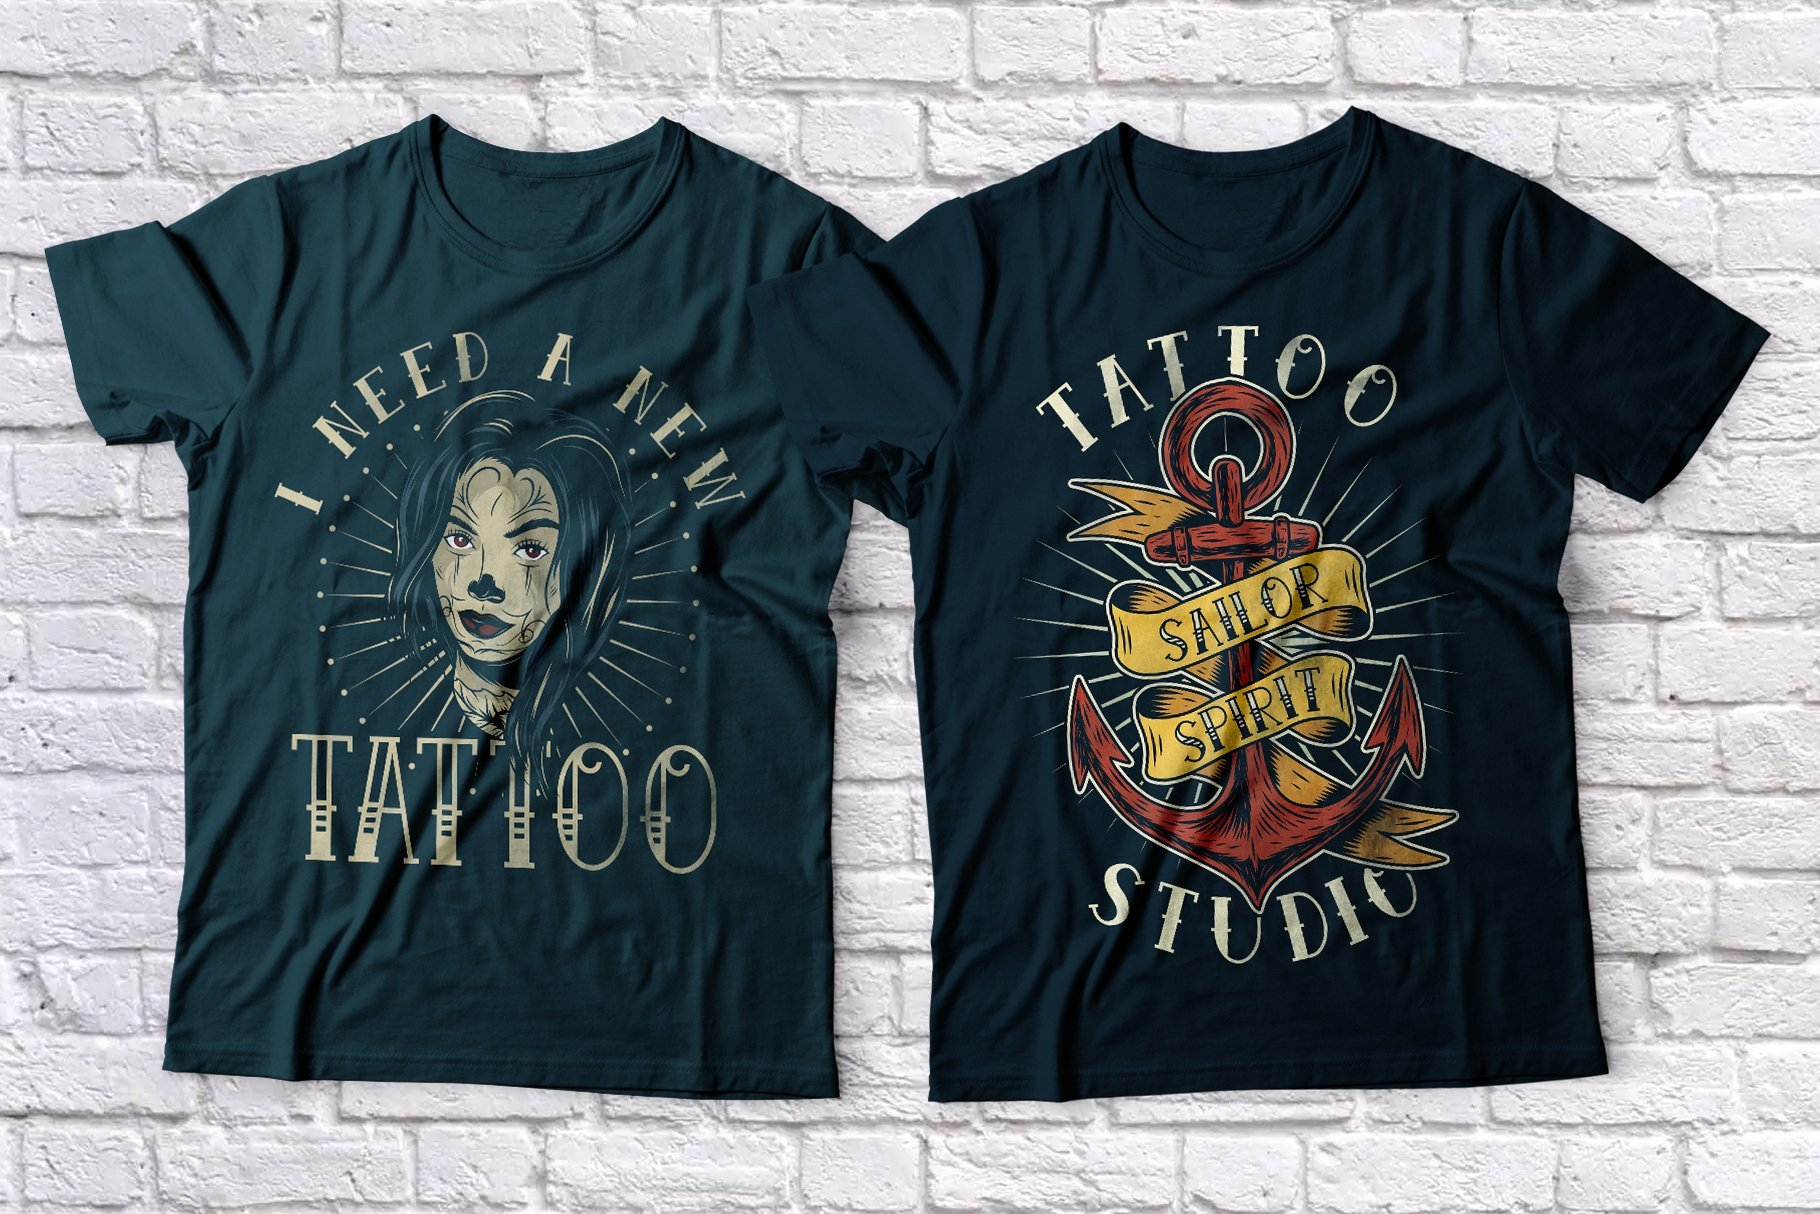 Themed T-shirts for tattoo artists.